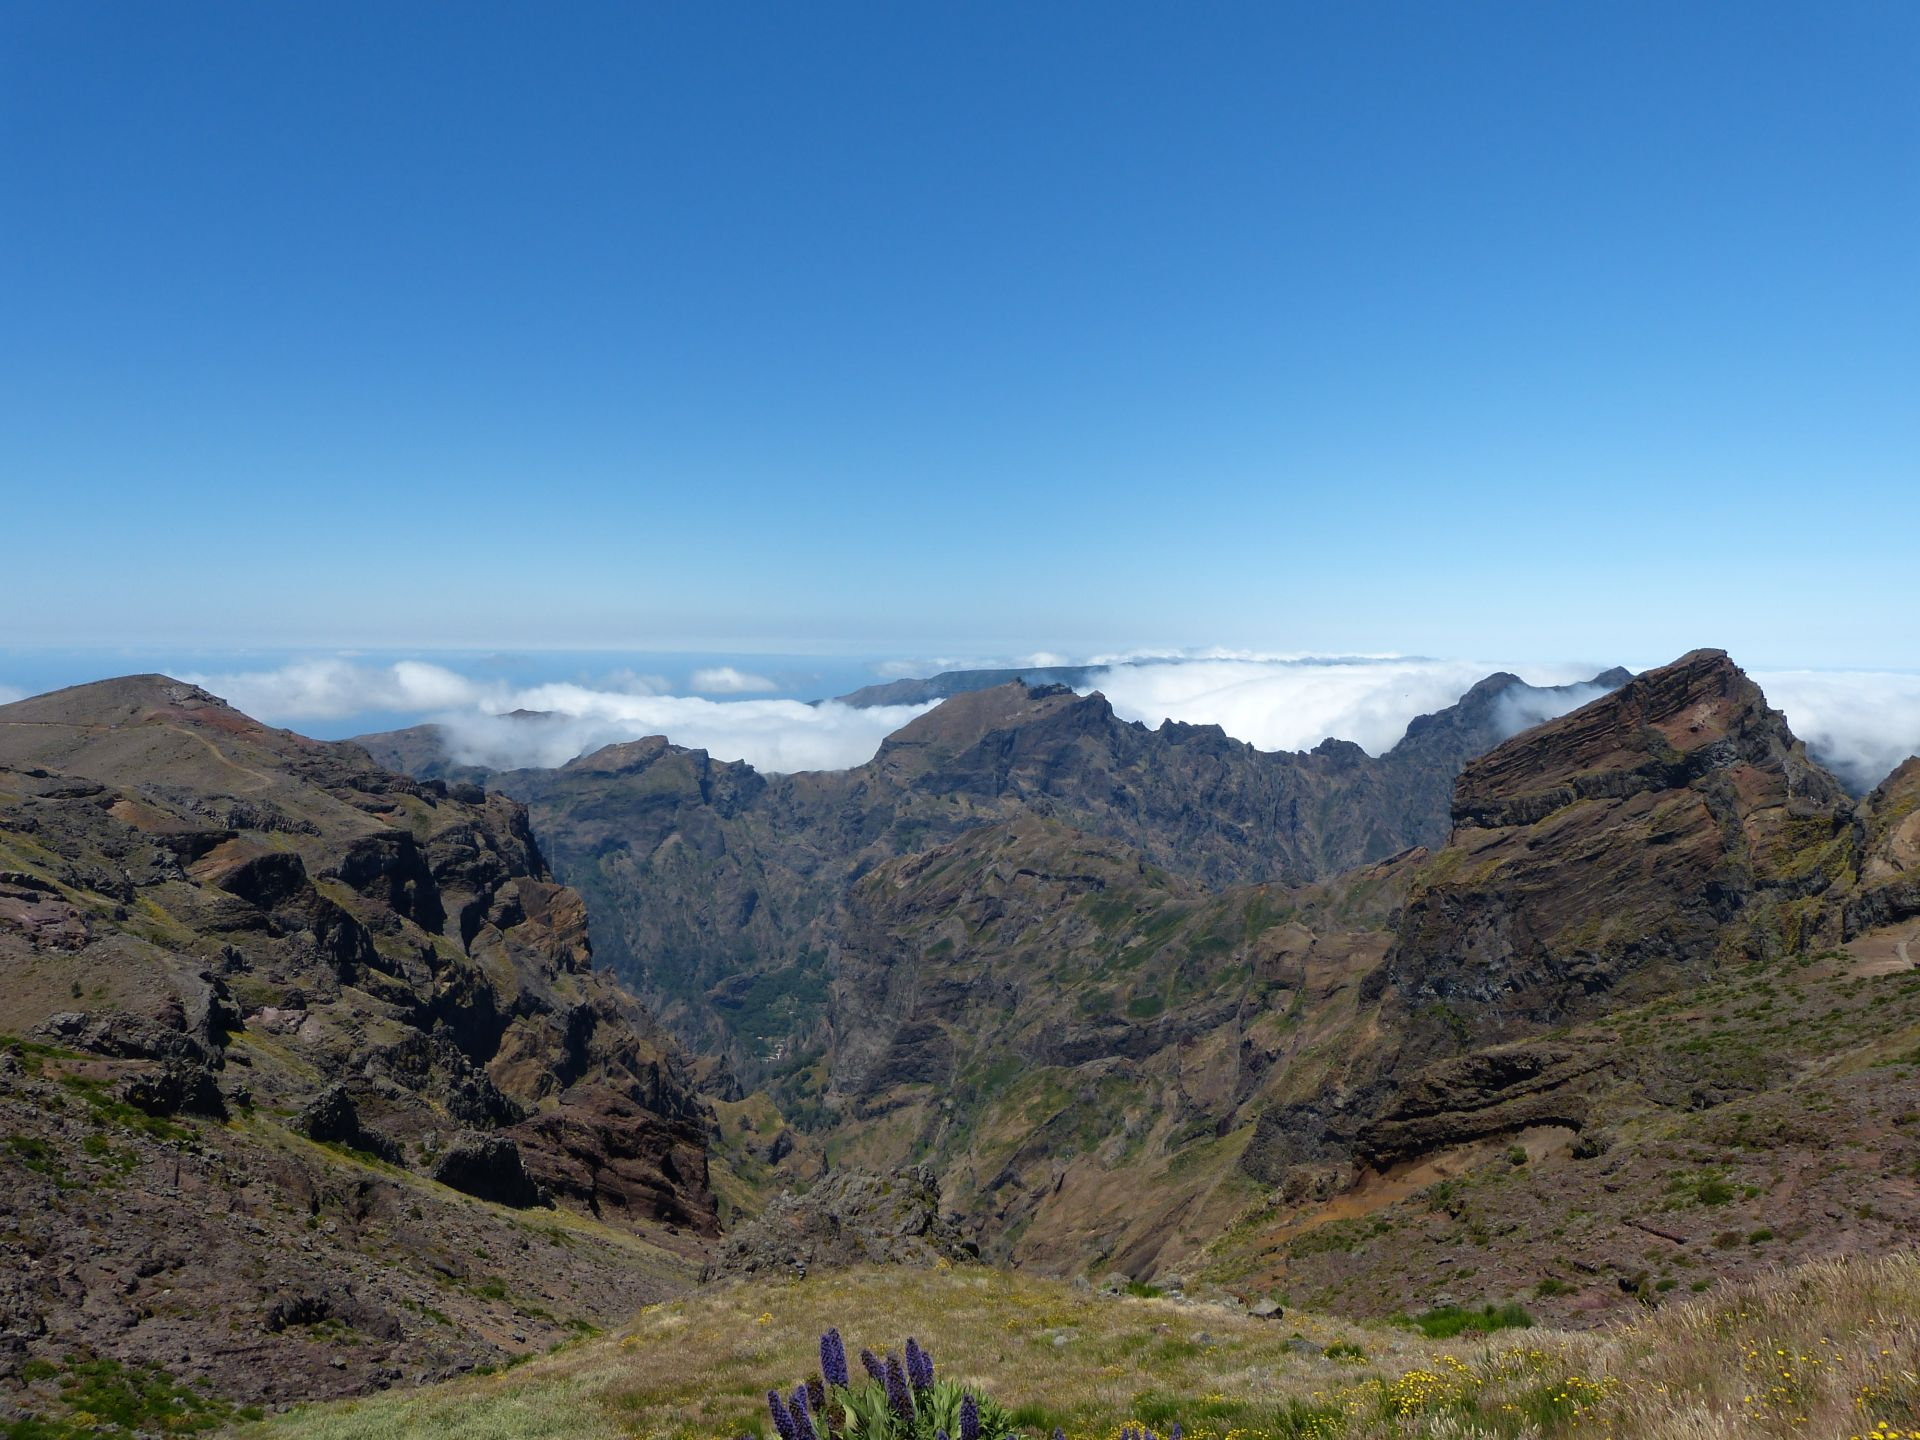 Am Pico do Arieiro